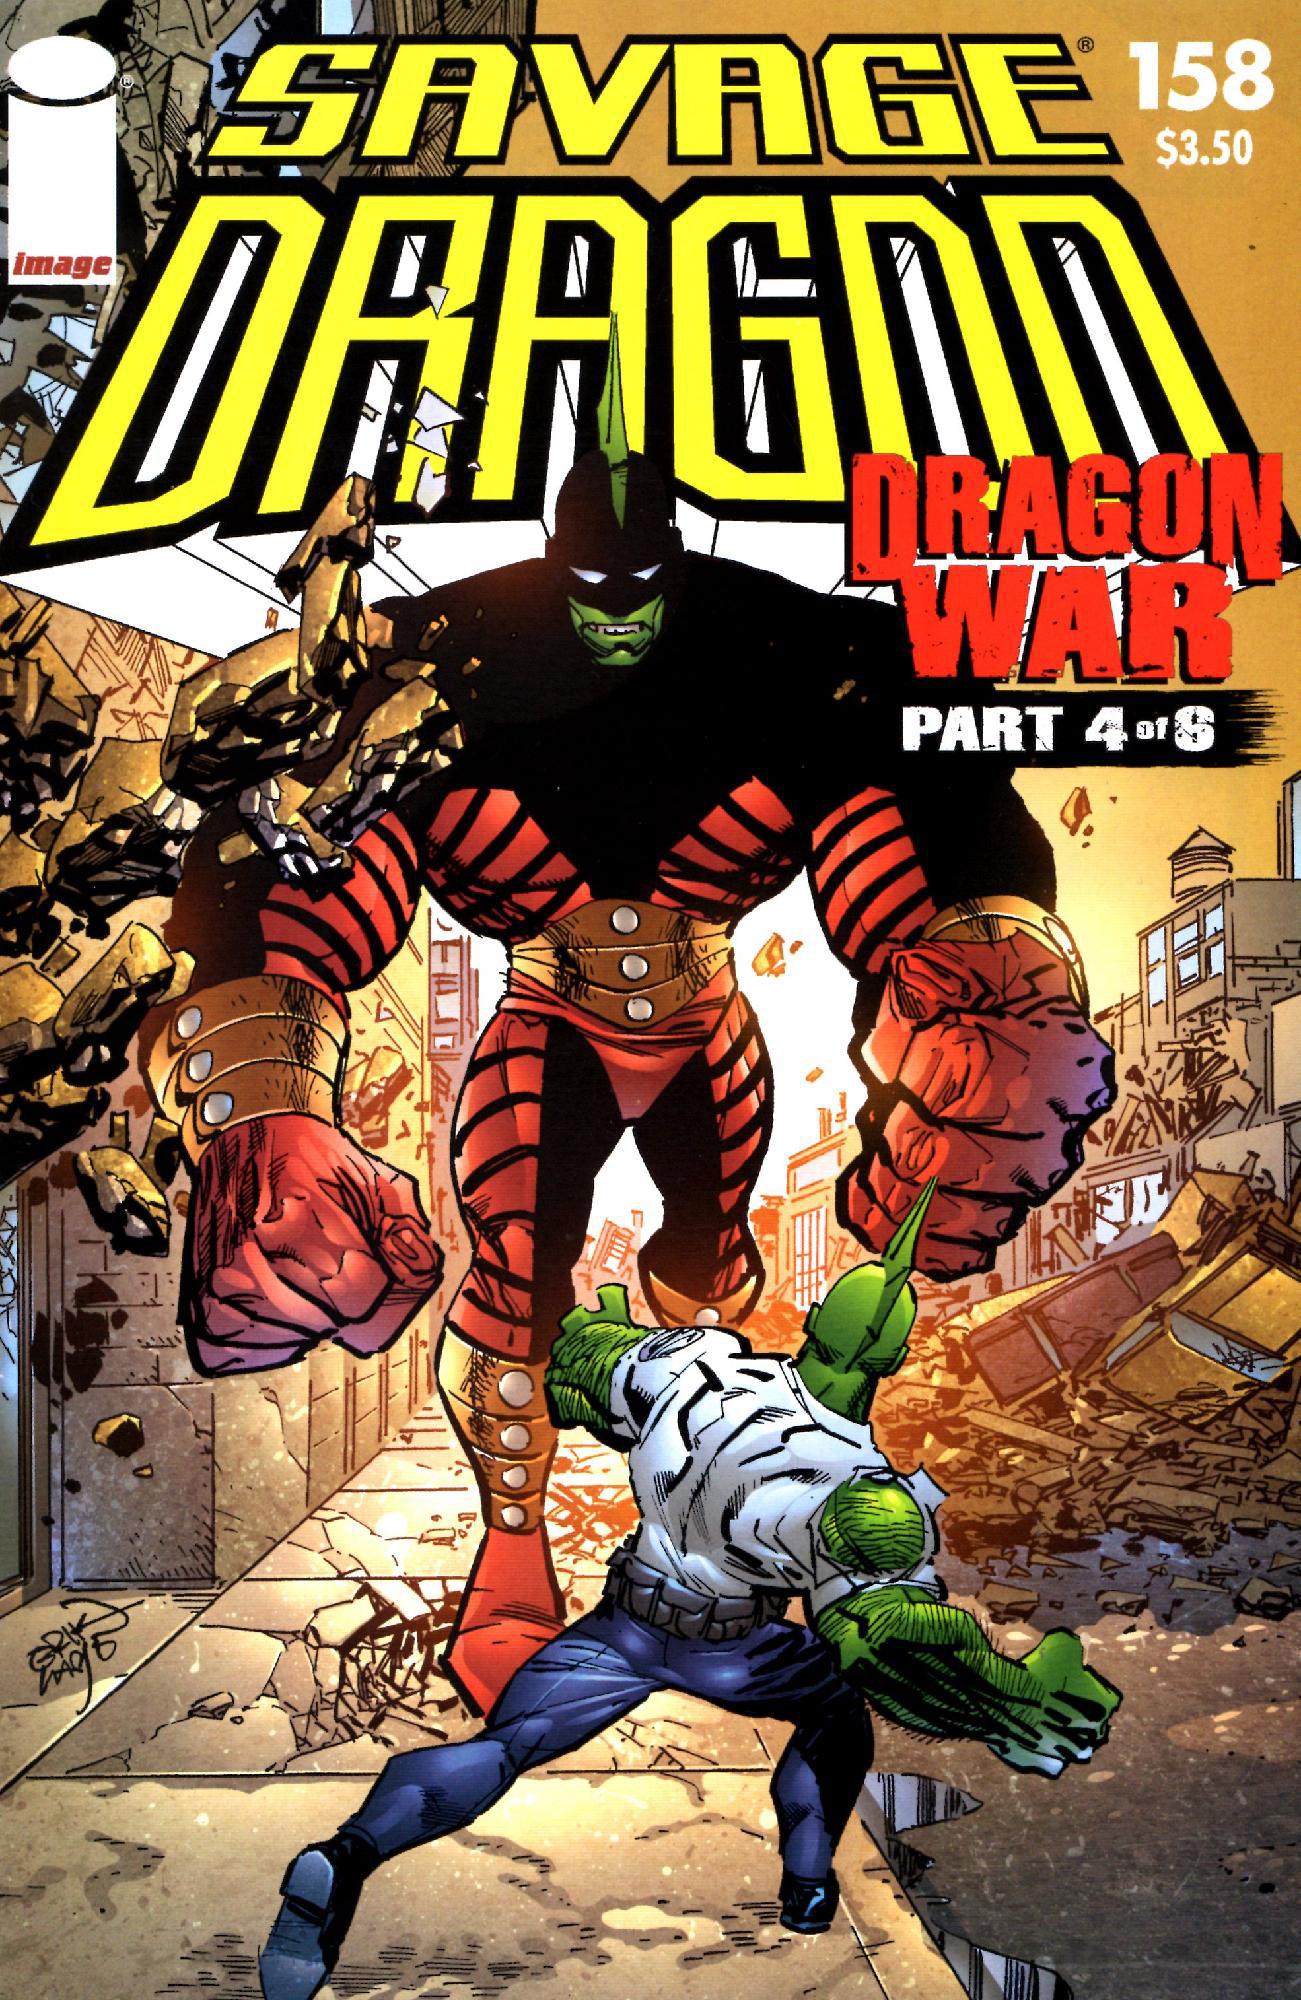 Cover Savage Dragon Vol.2 #158